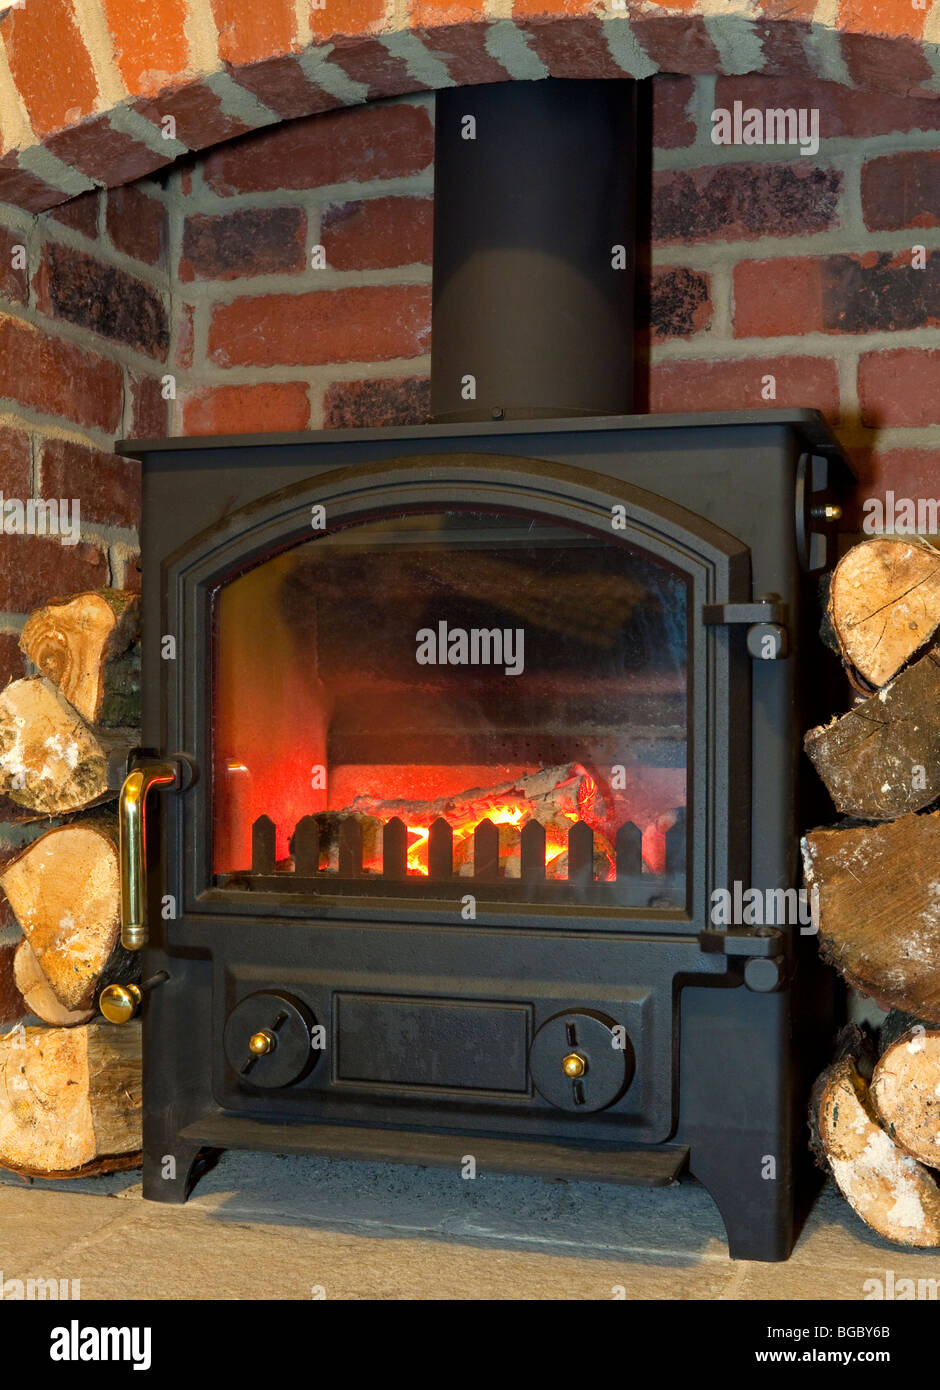 Multi Fuel Domestic Stove That Can Burn Coal Or Wood With Logs